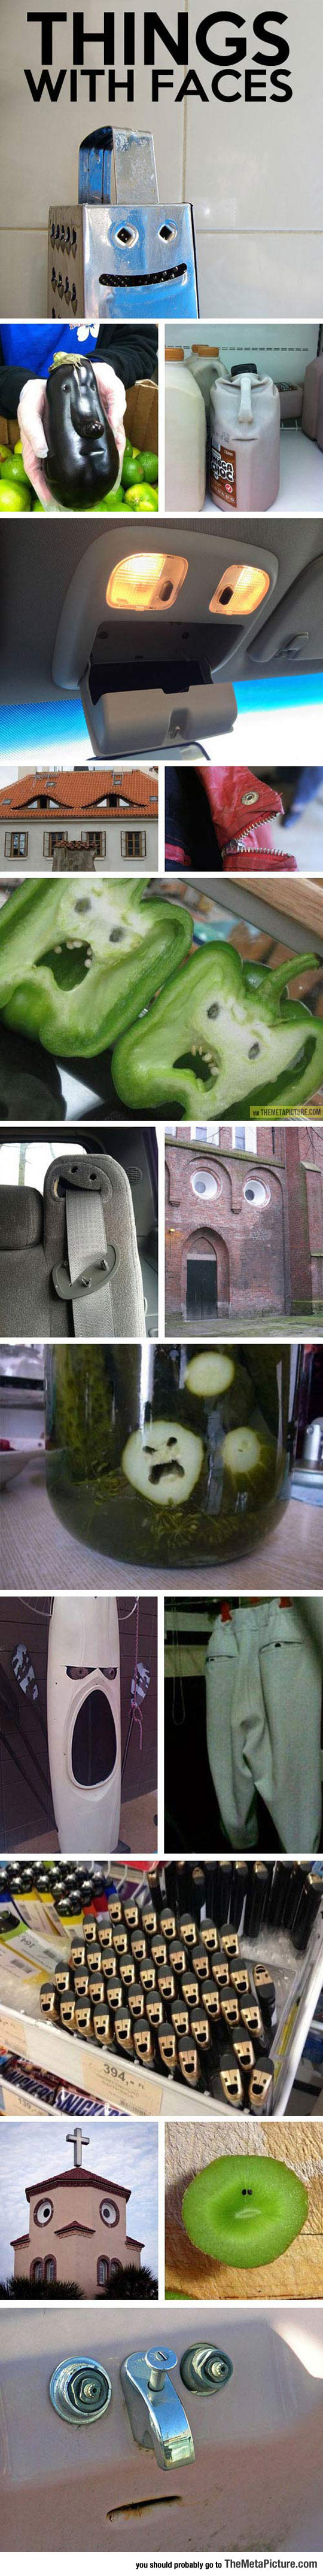 cool-things-with-faces-compilation